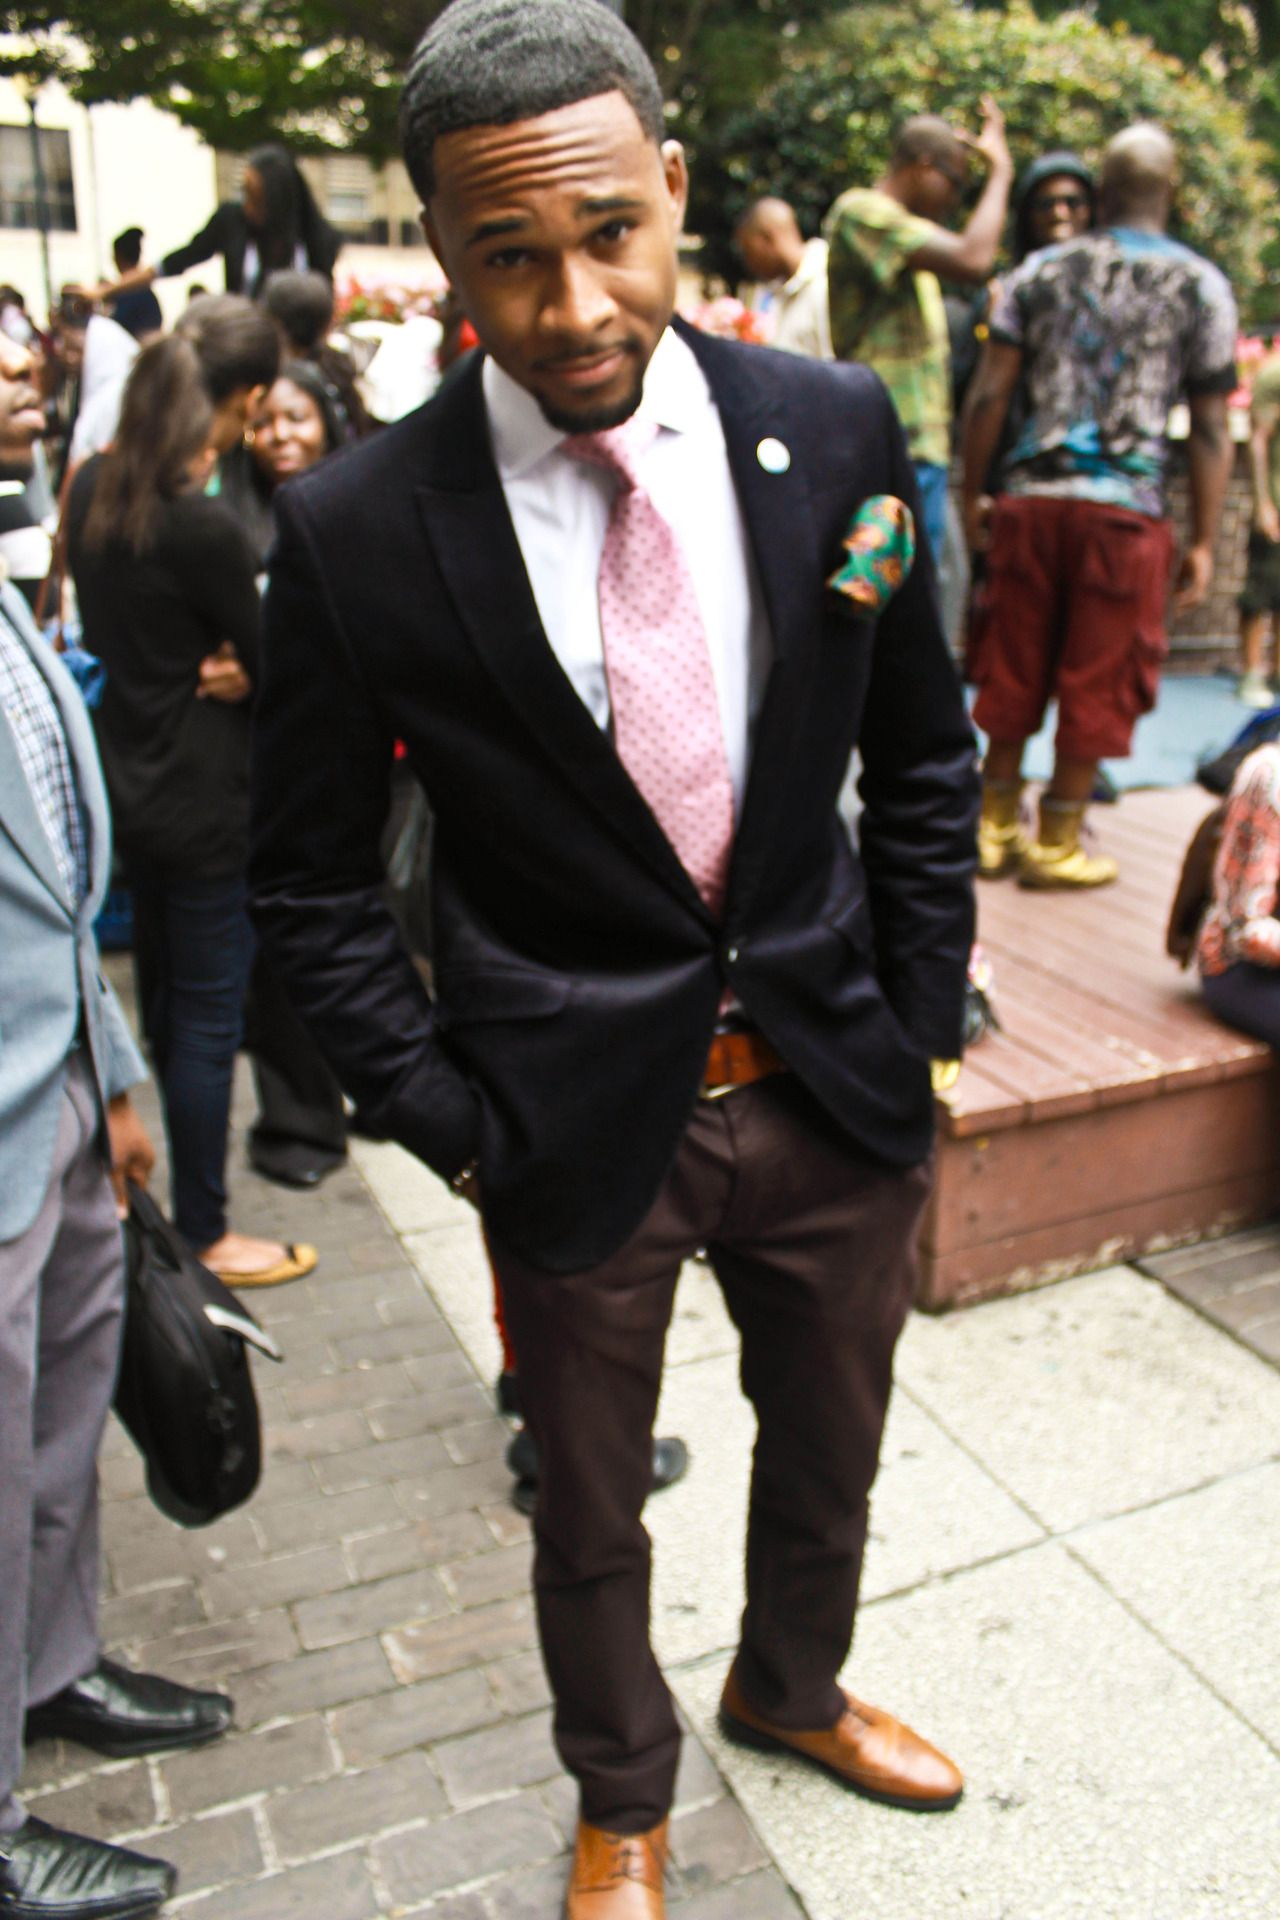 Educated, Ambitious, Well-dressed black man. Go on brother man ...